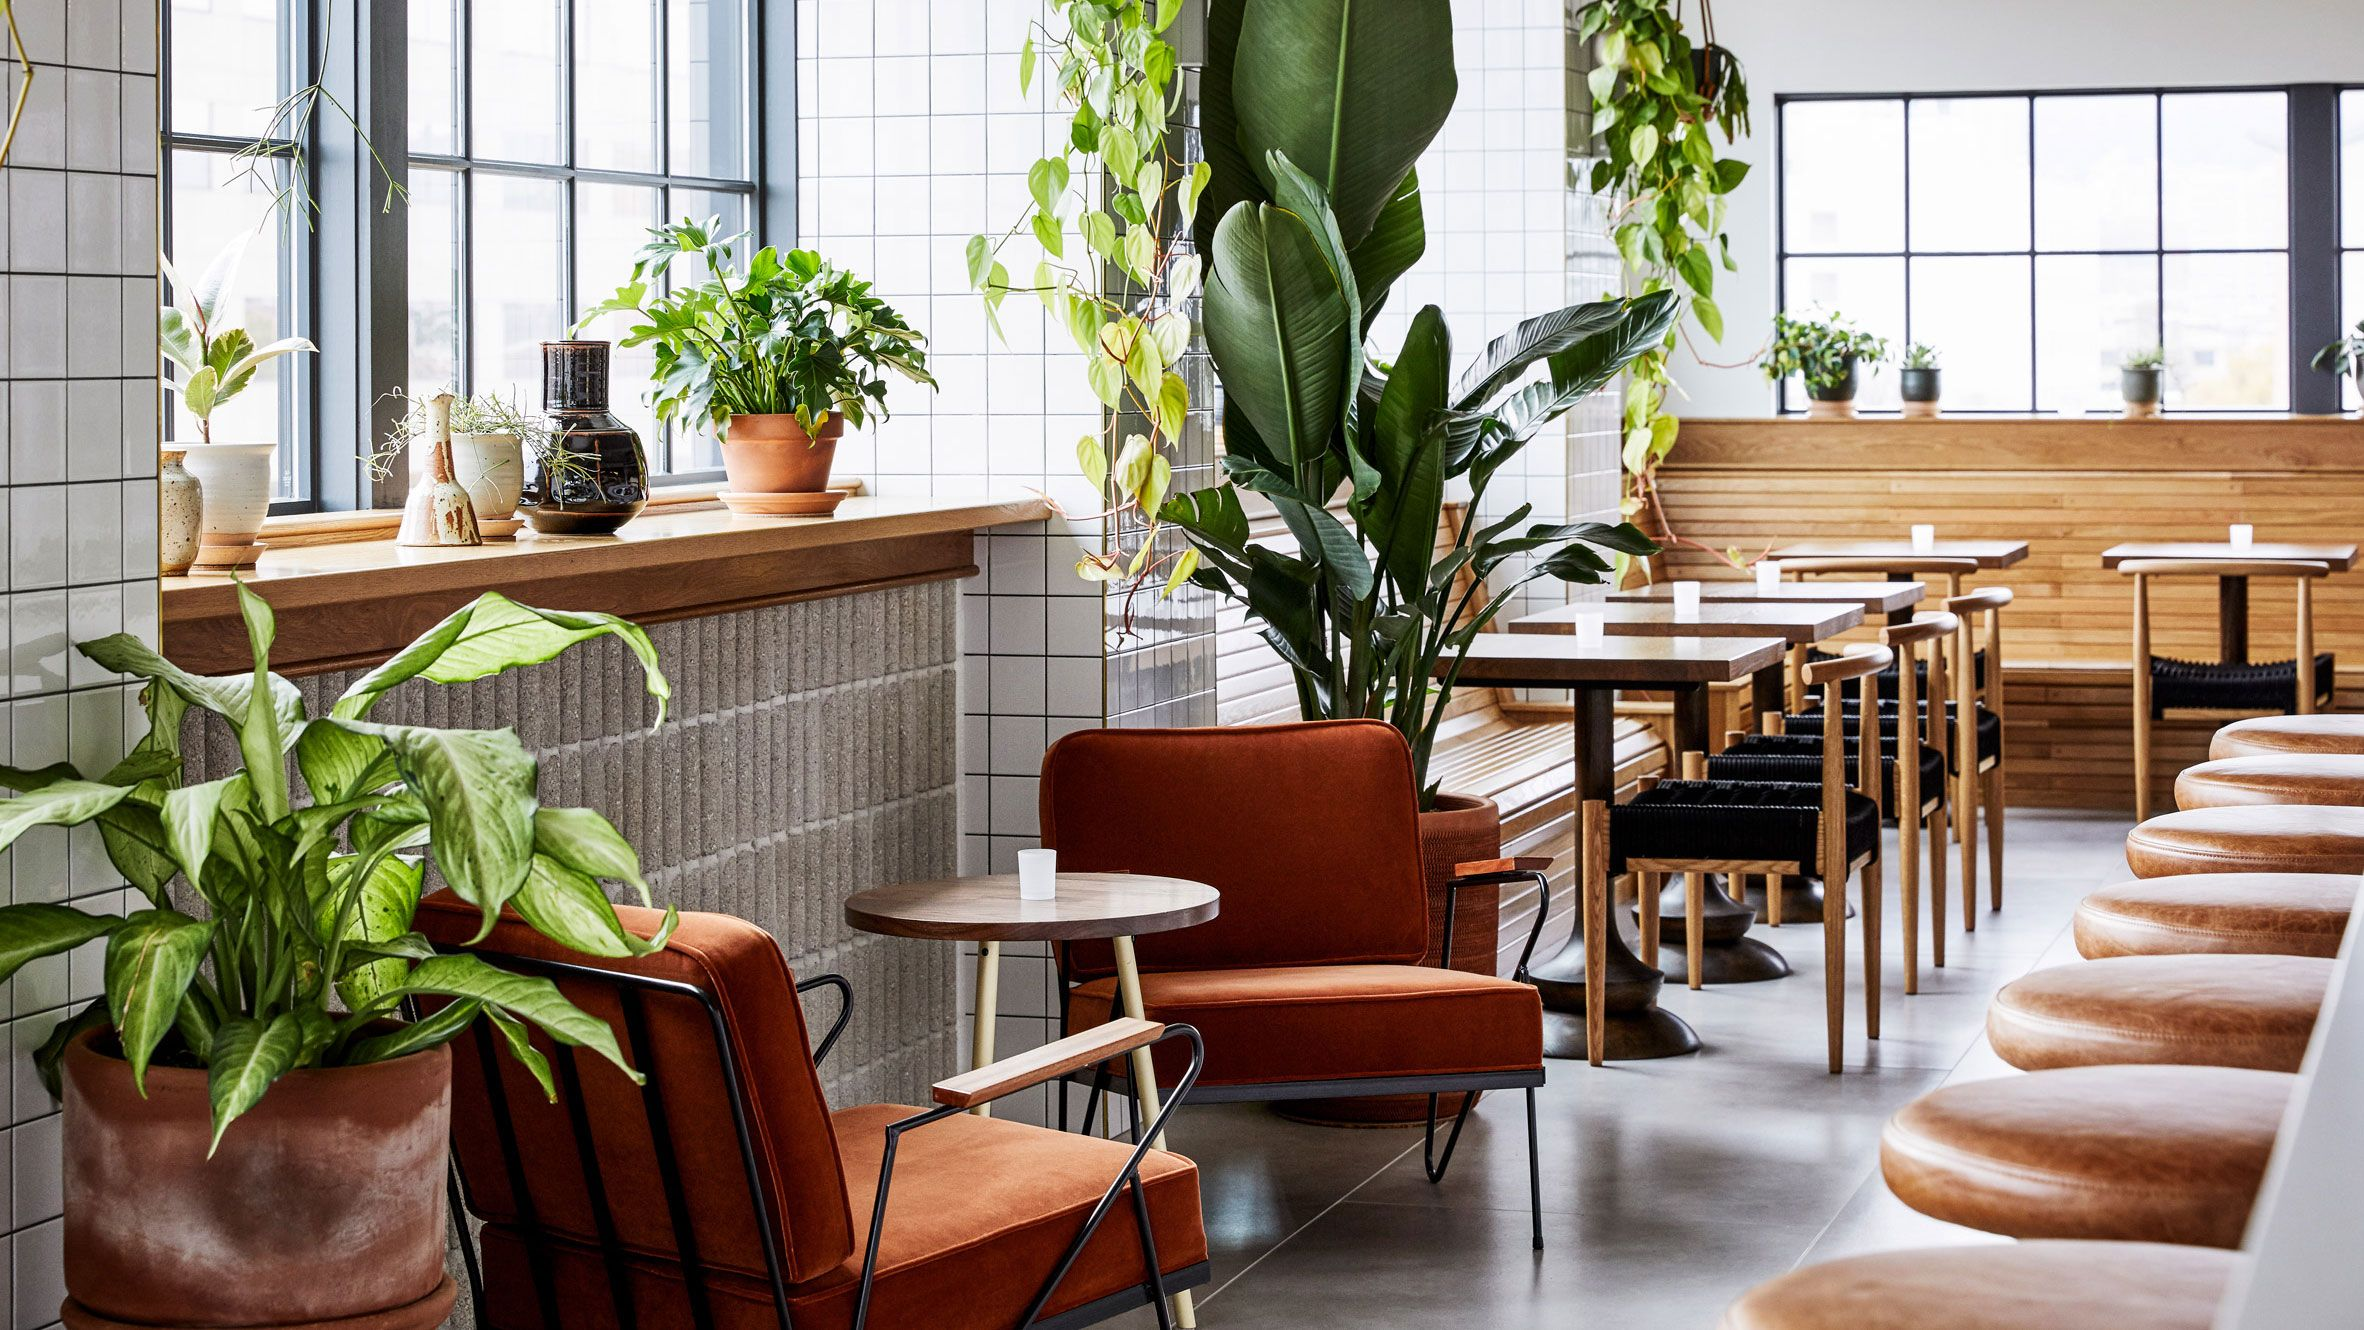 London Based Hotelier Ennismore Has Opened A Branch Of Its Chain The Hoxton Within A Historic Building In Portland With Hotel Hoxton Interior Portland Hotels